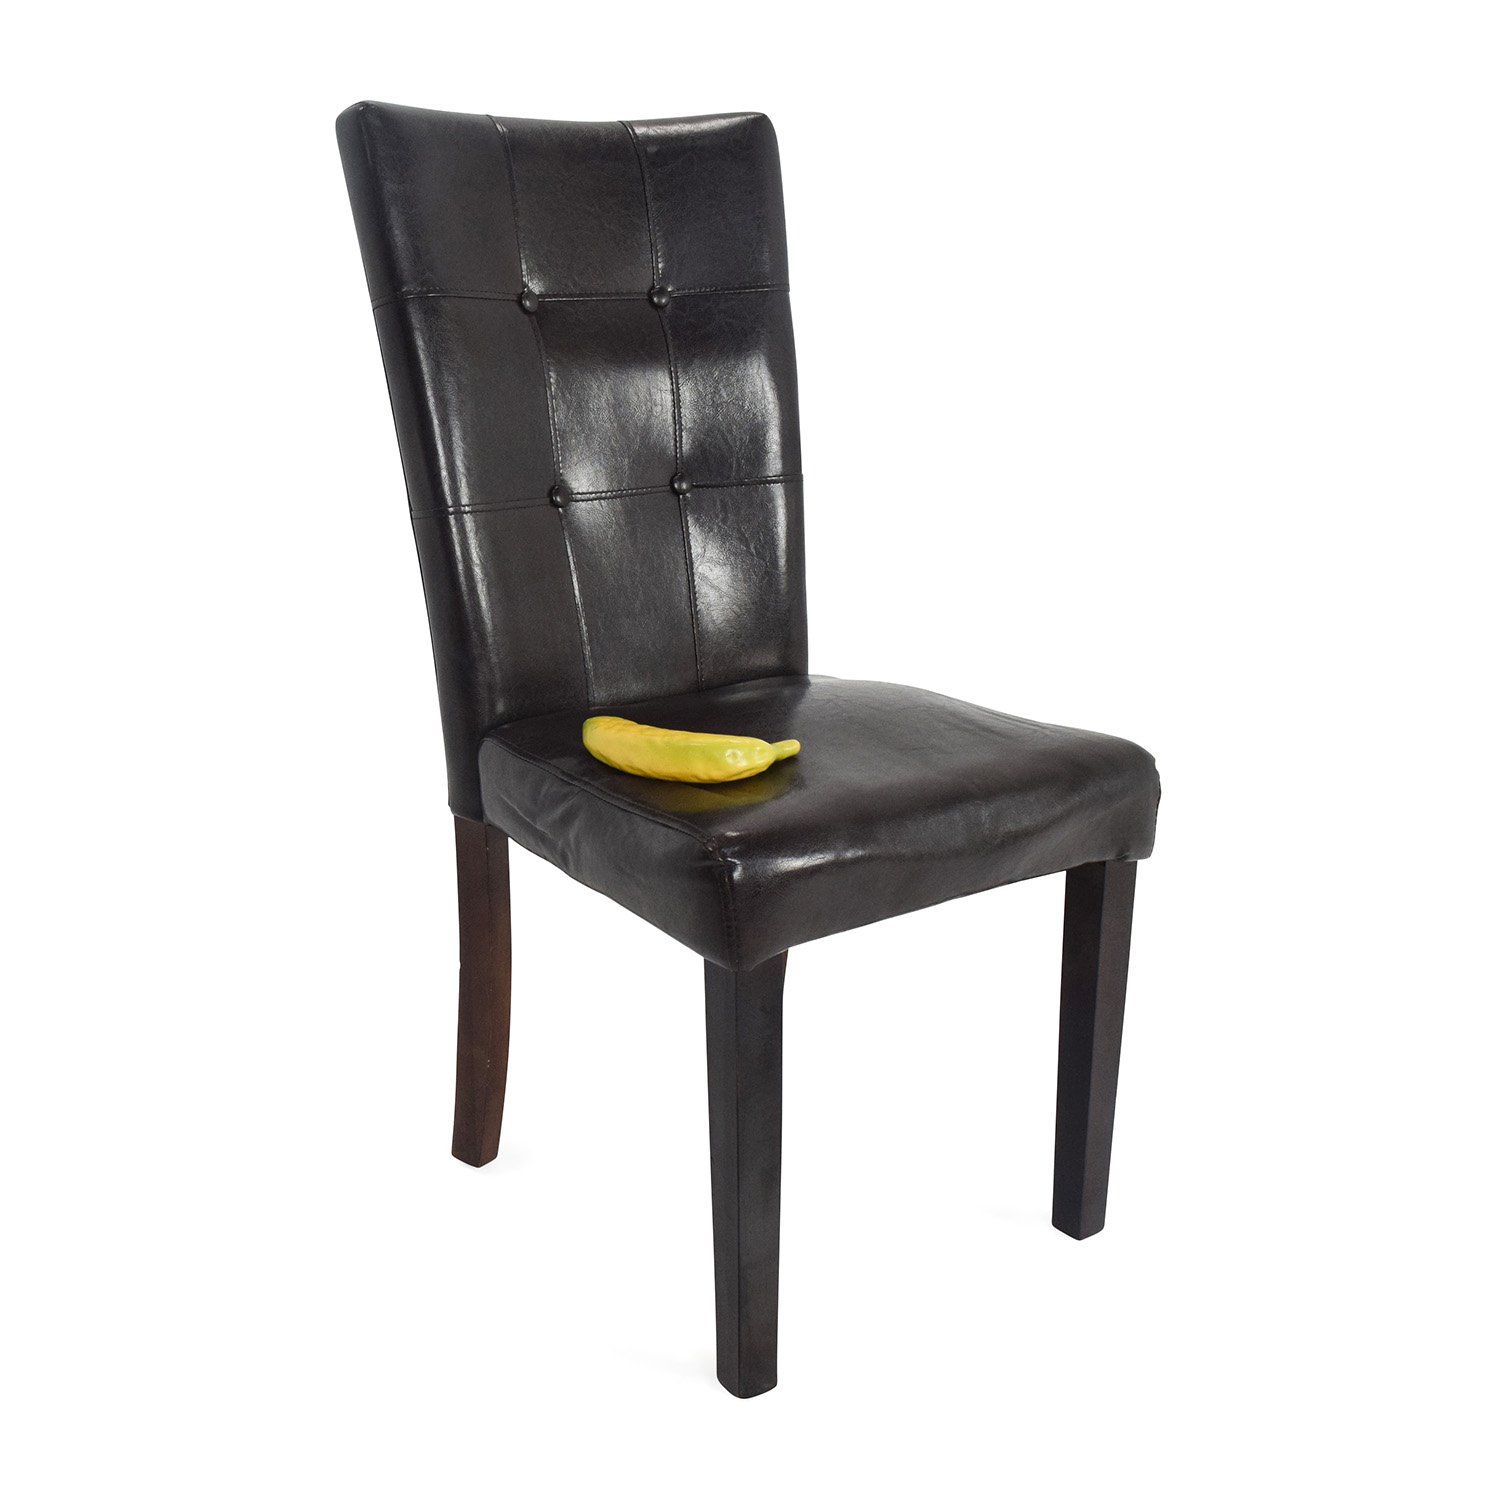 Enjoyable 49 Off Kirklands Leather Accent Chair Chairs Pabps2019 Chair Design Images Pabps2019Com